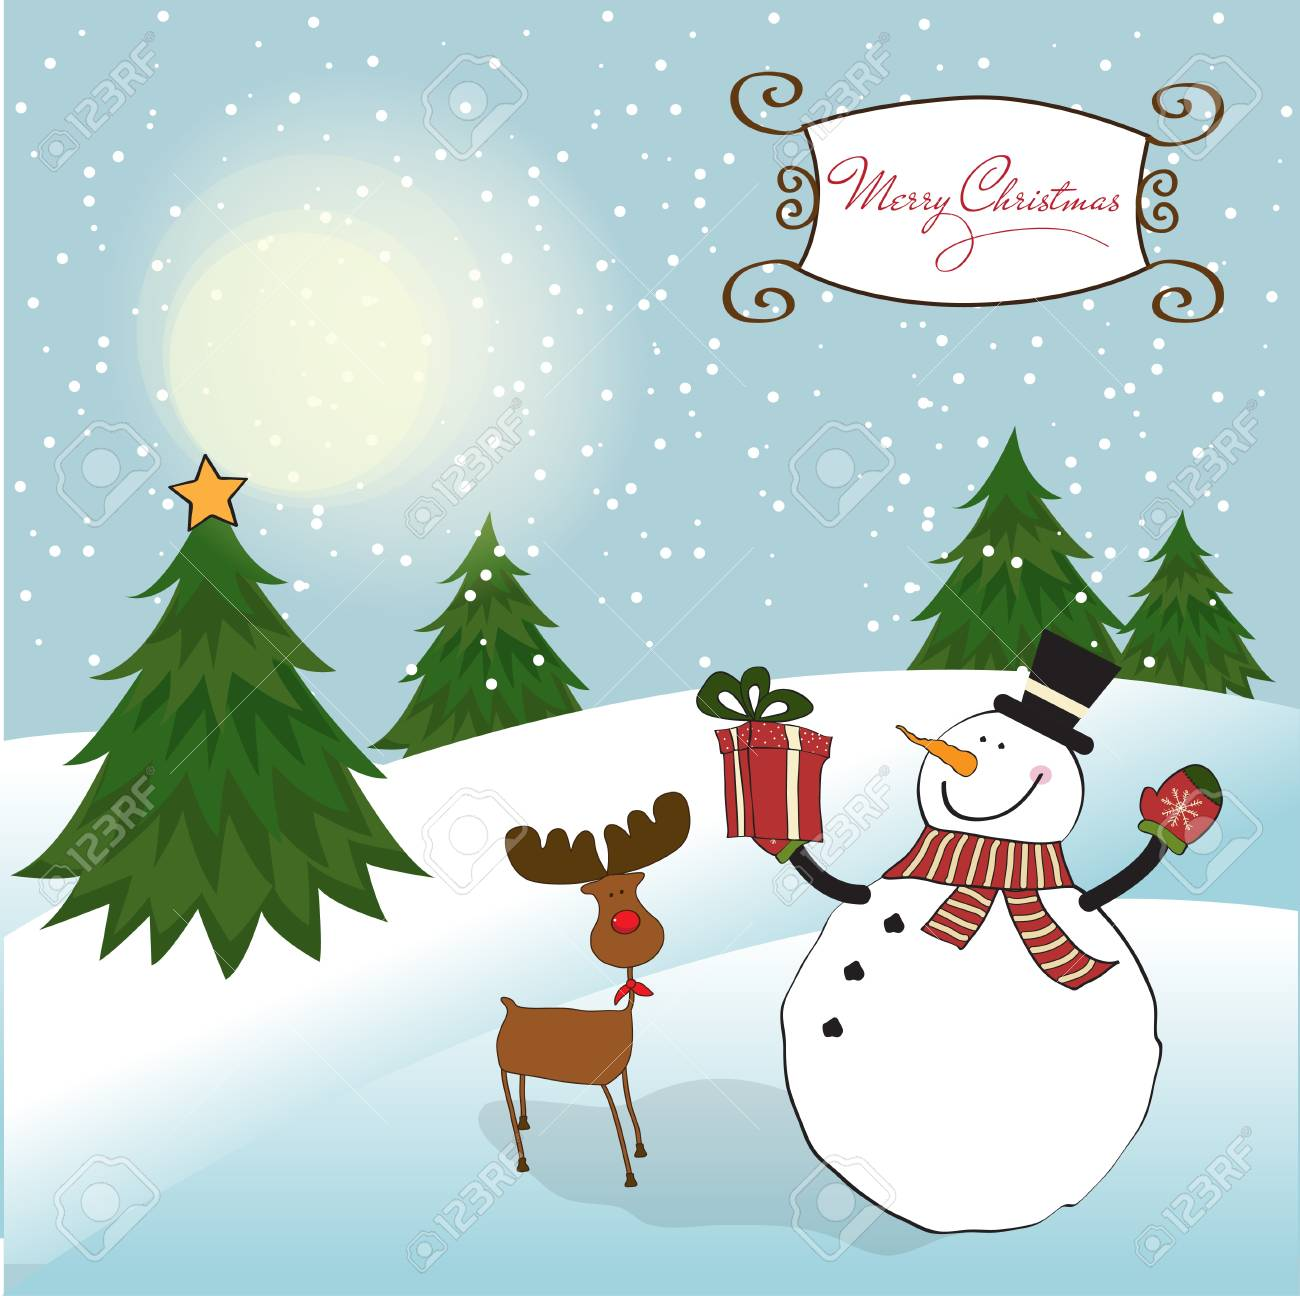 Christmas greeting card with snowman Stock Vector - 11358794